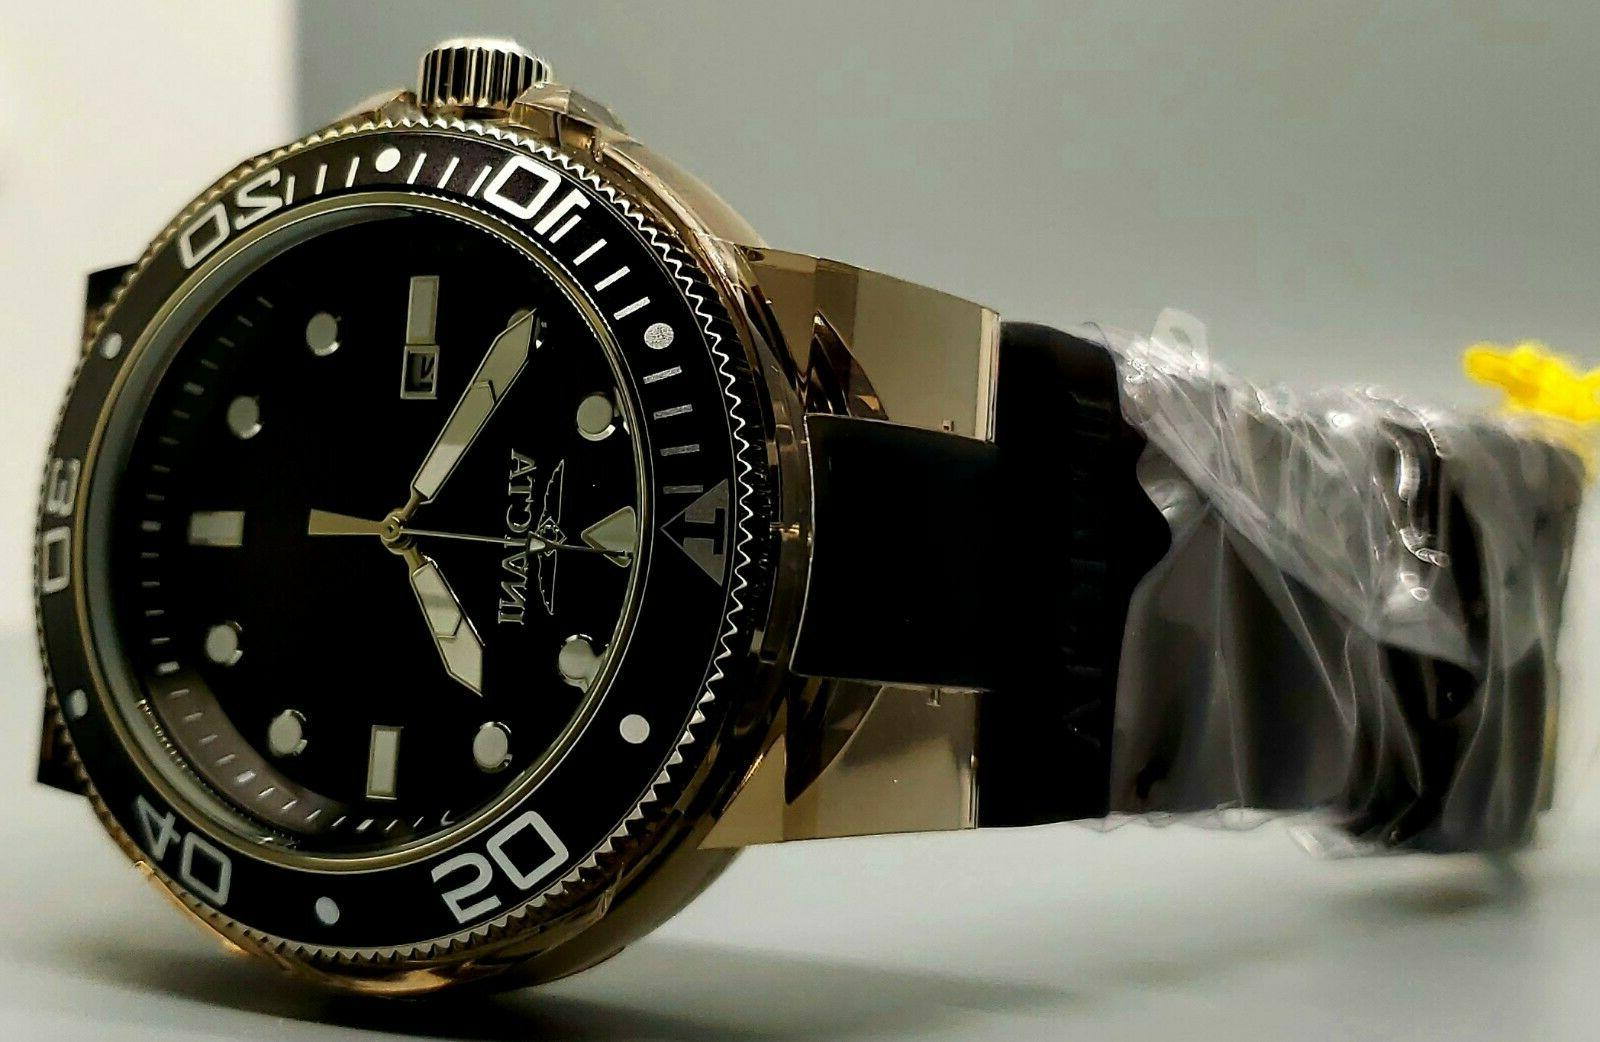 New Diver Transparent Case Silicone Watch